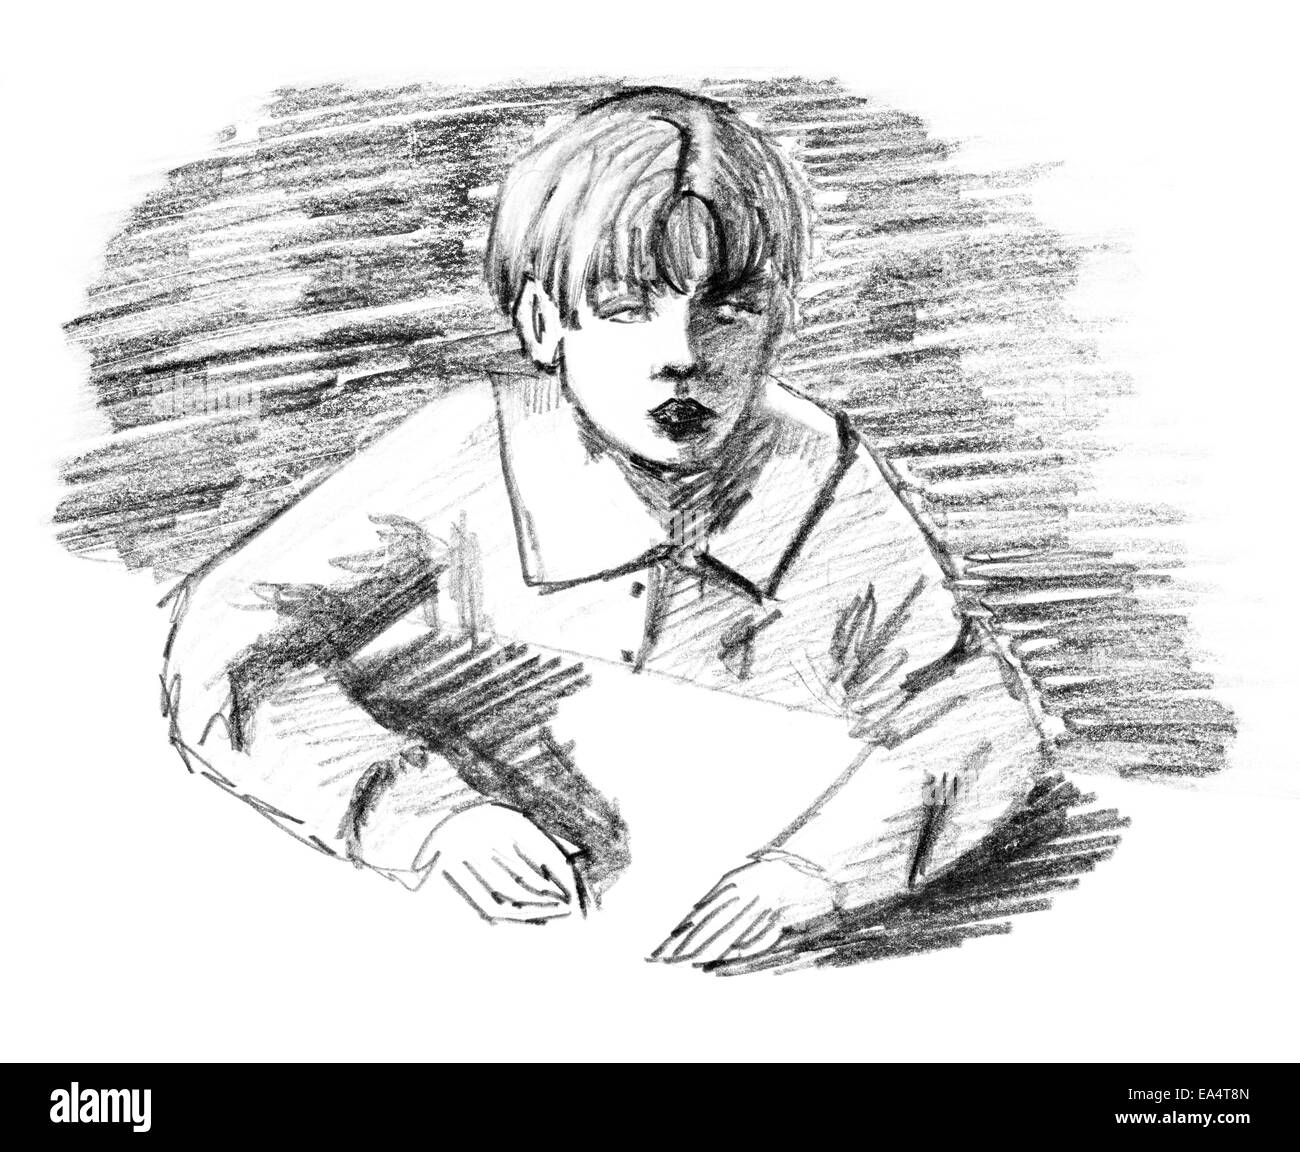 Boy and desk original pencil sketch of ten year old boy sitting by a table